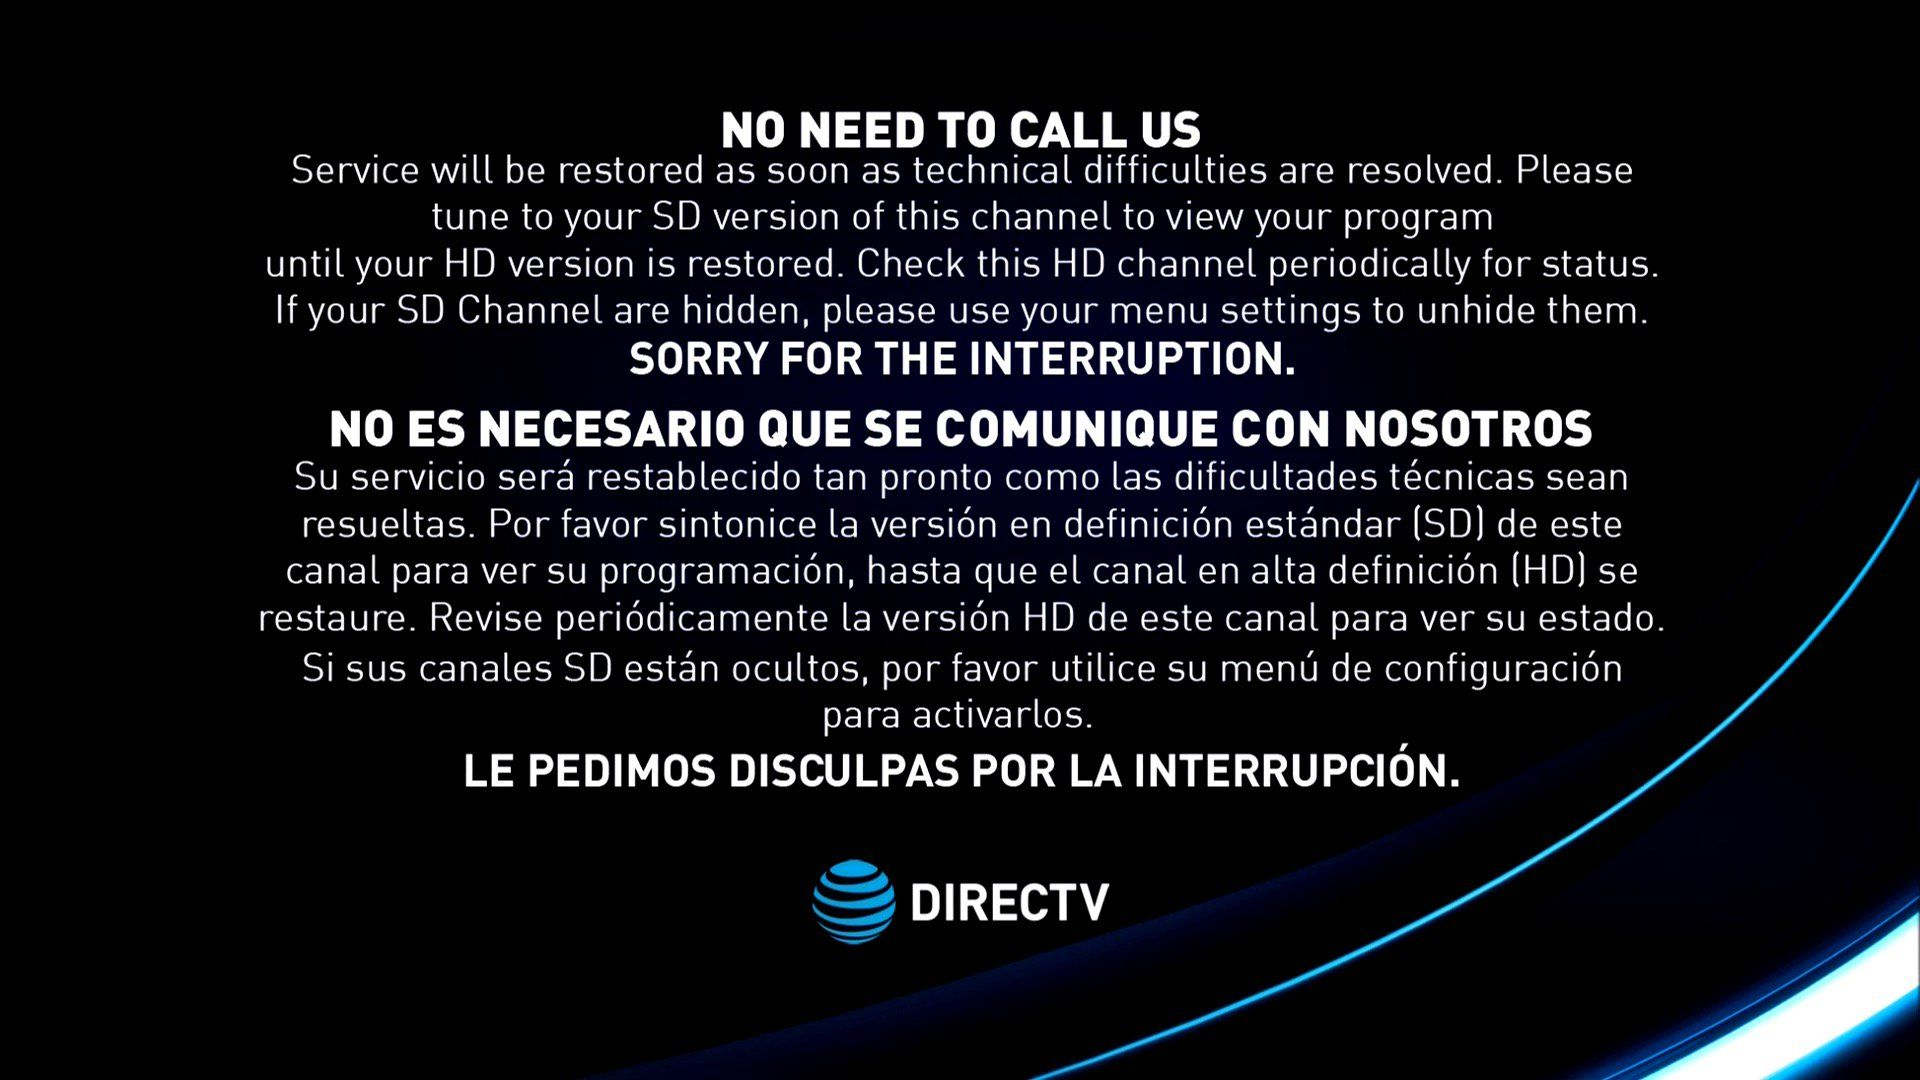 Gizmodo: DirecTV technical issue blocks out Fox News and Republicans are freaking out https://t.co/6CDjWMz6h4 https://t.co/0TpQi1V6NC